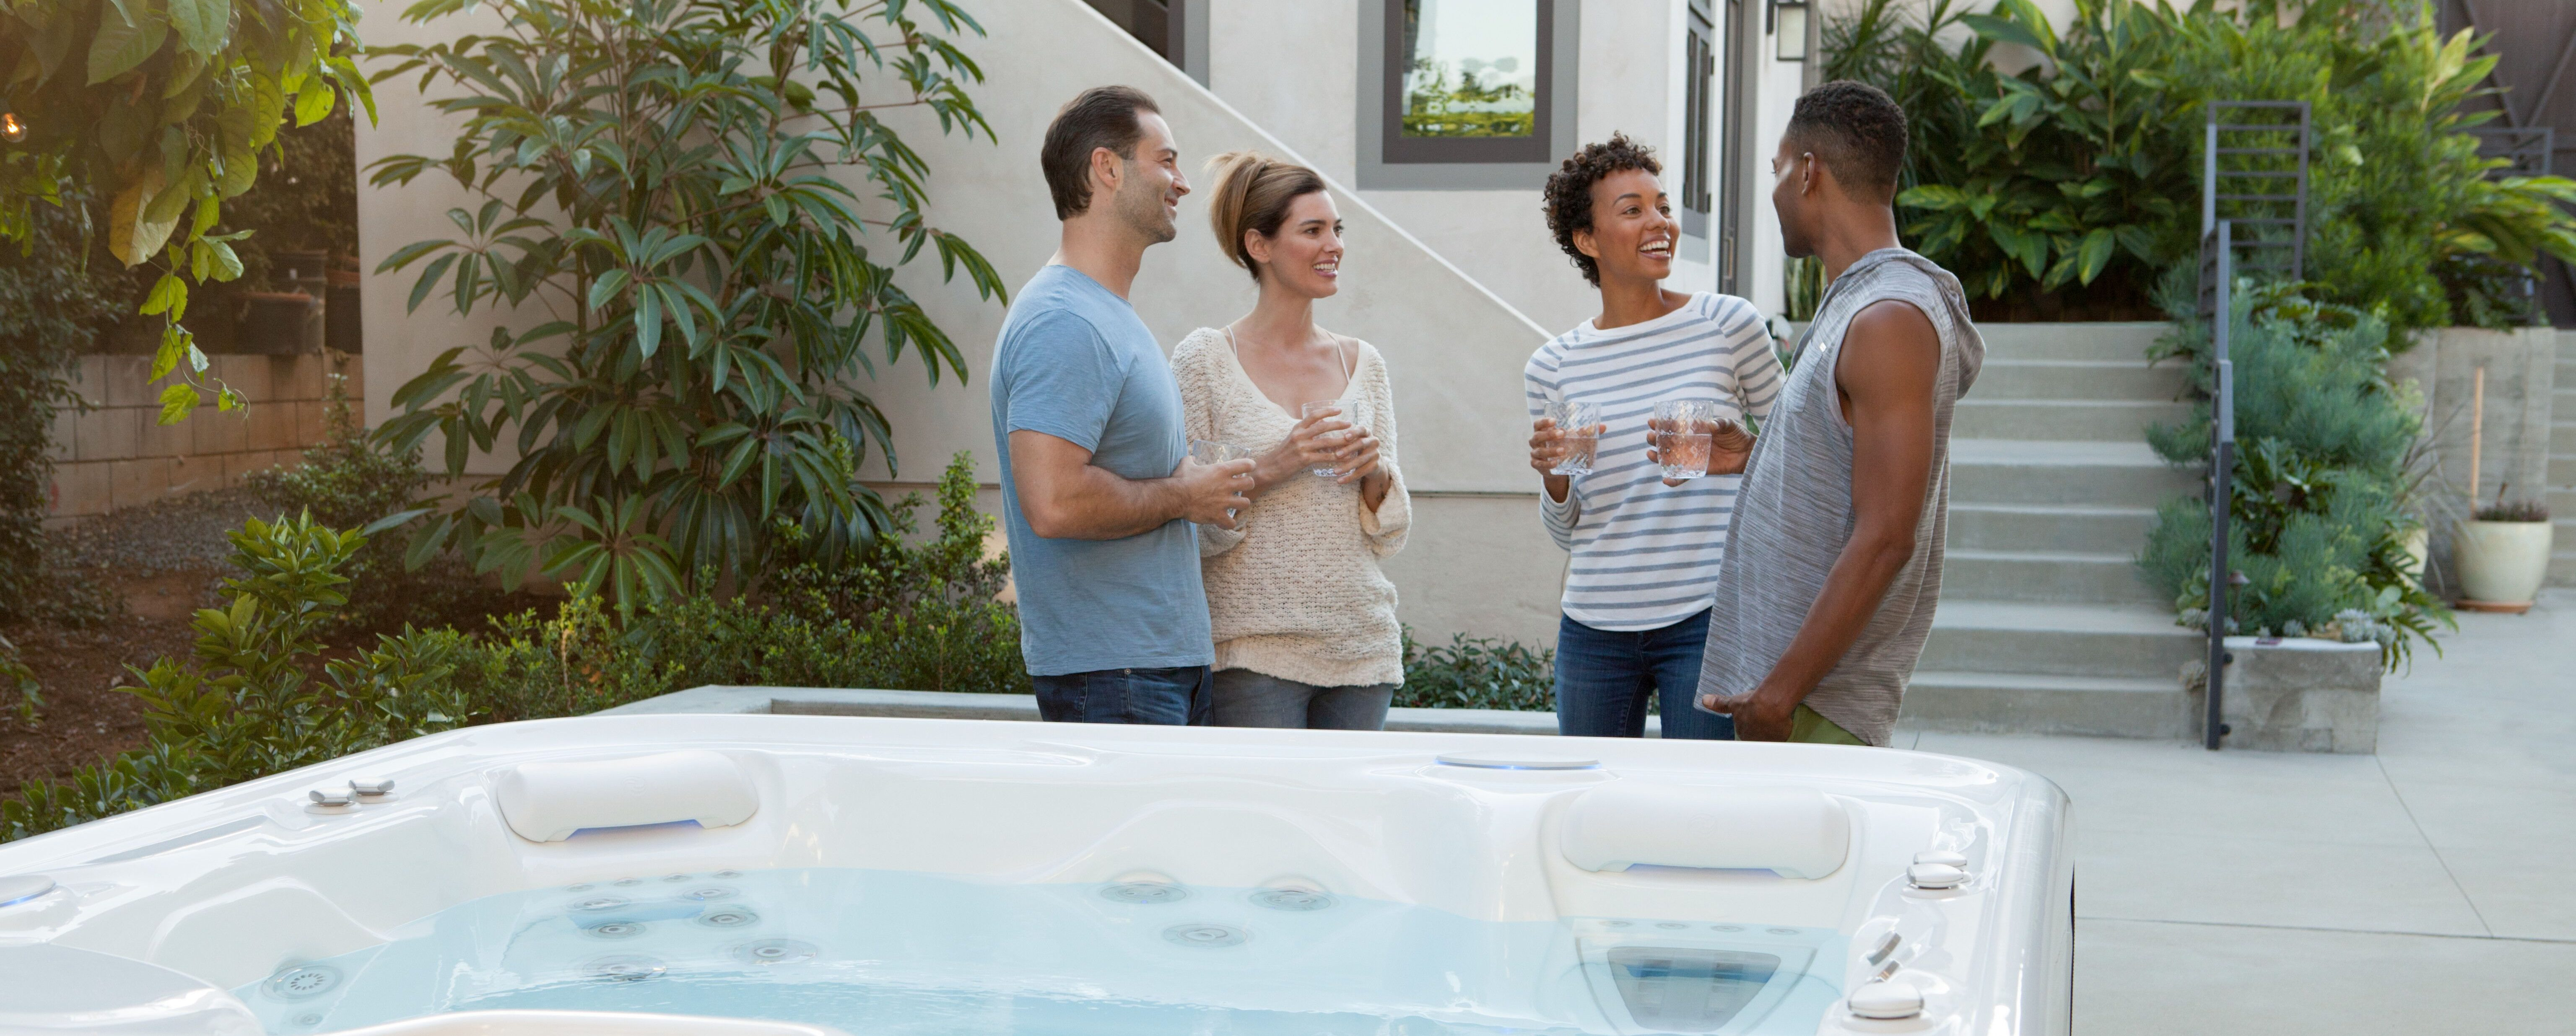 Can Your Hot Tub Move With You?